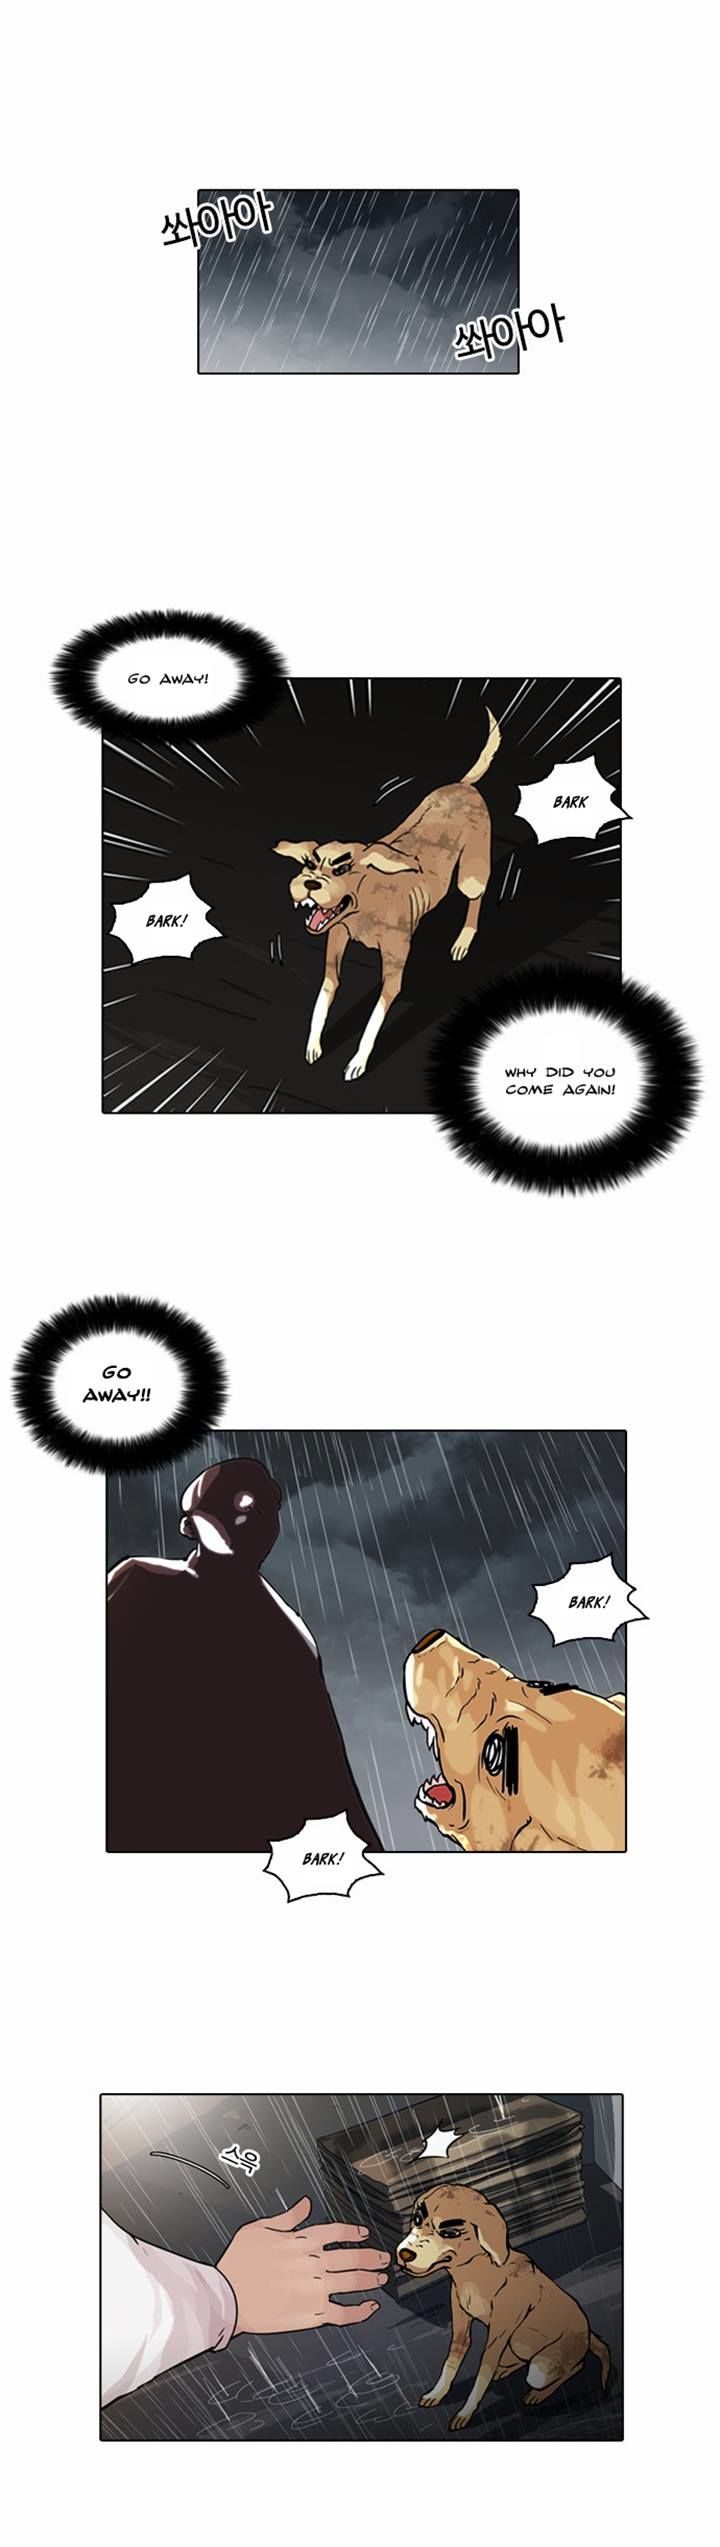 Lookism 61 Page 1